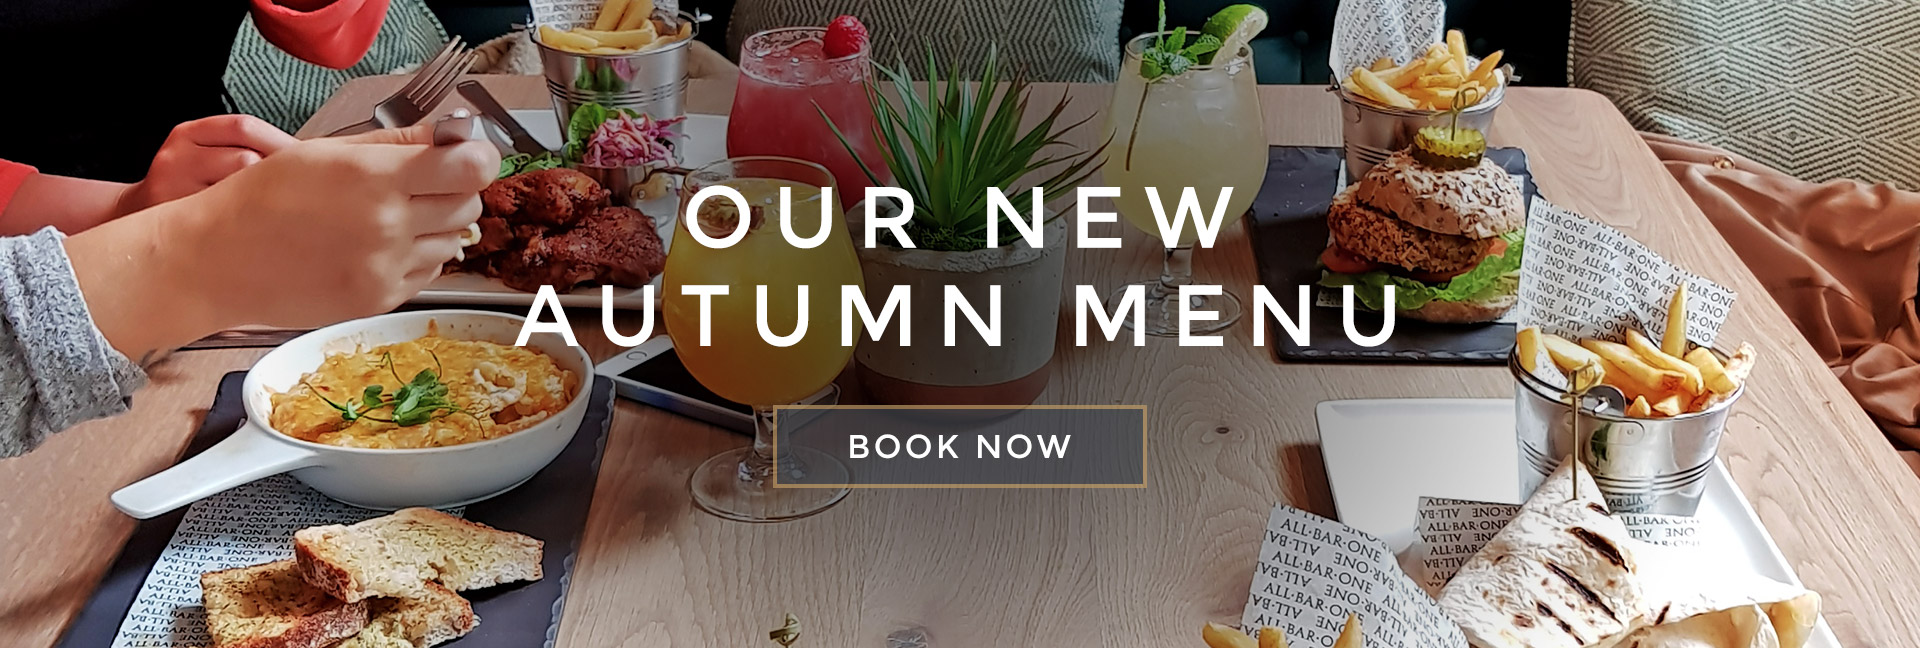 Our new Autumn menu at All Bar One Ludgate Hill - Book now